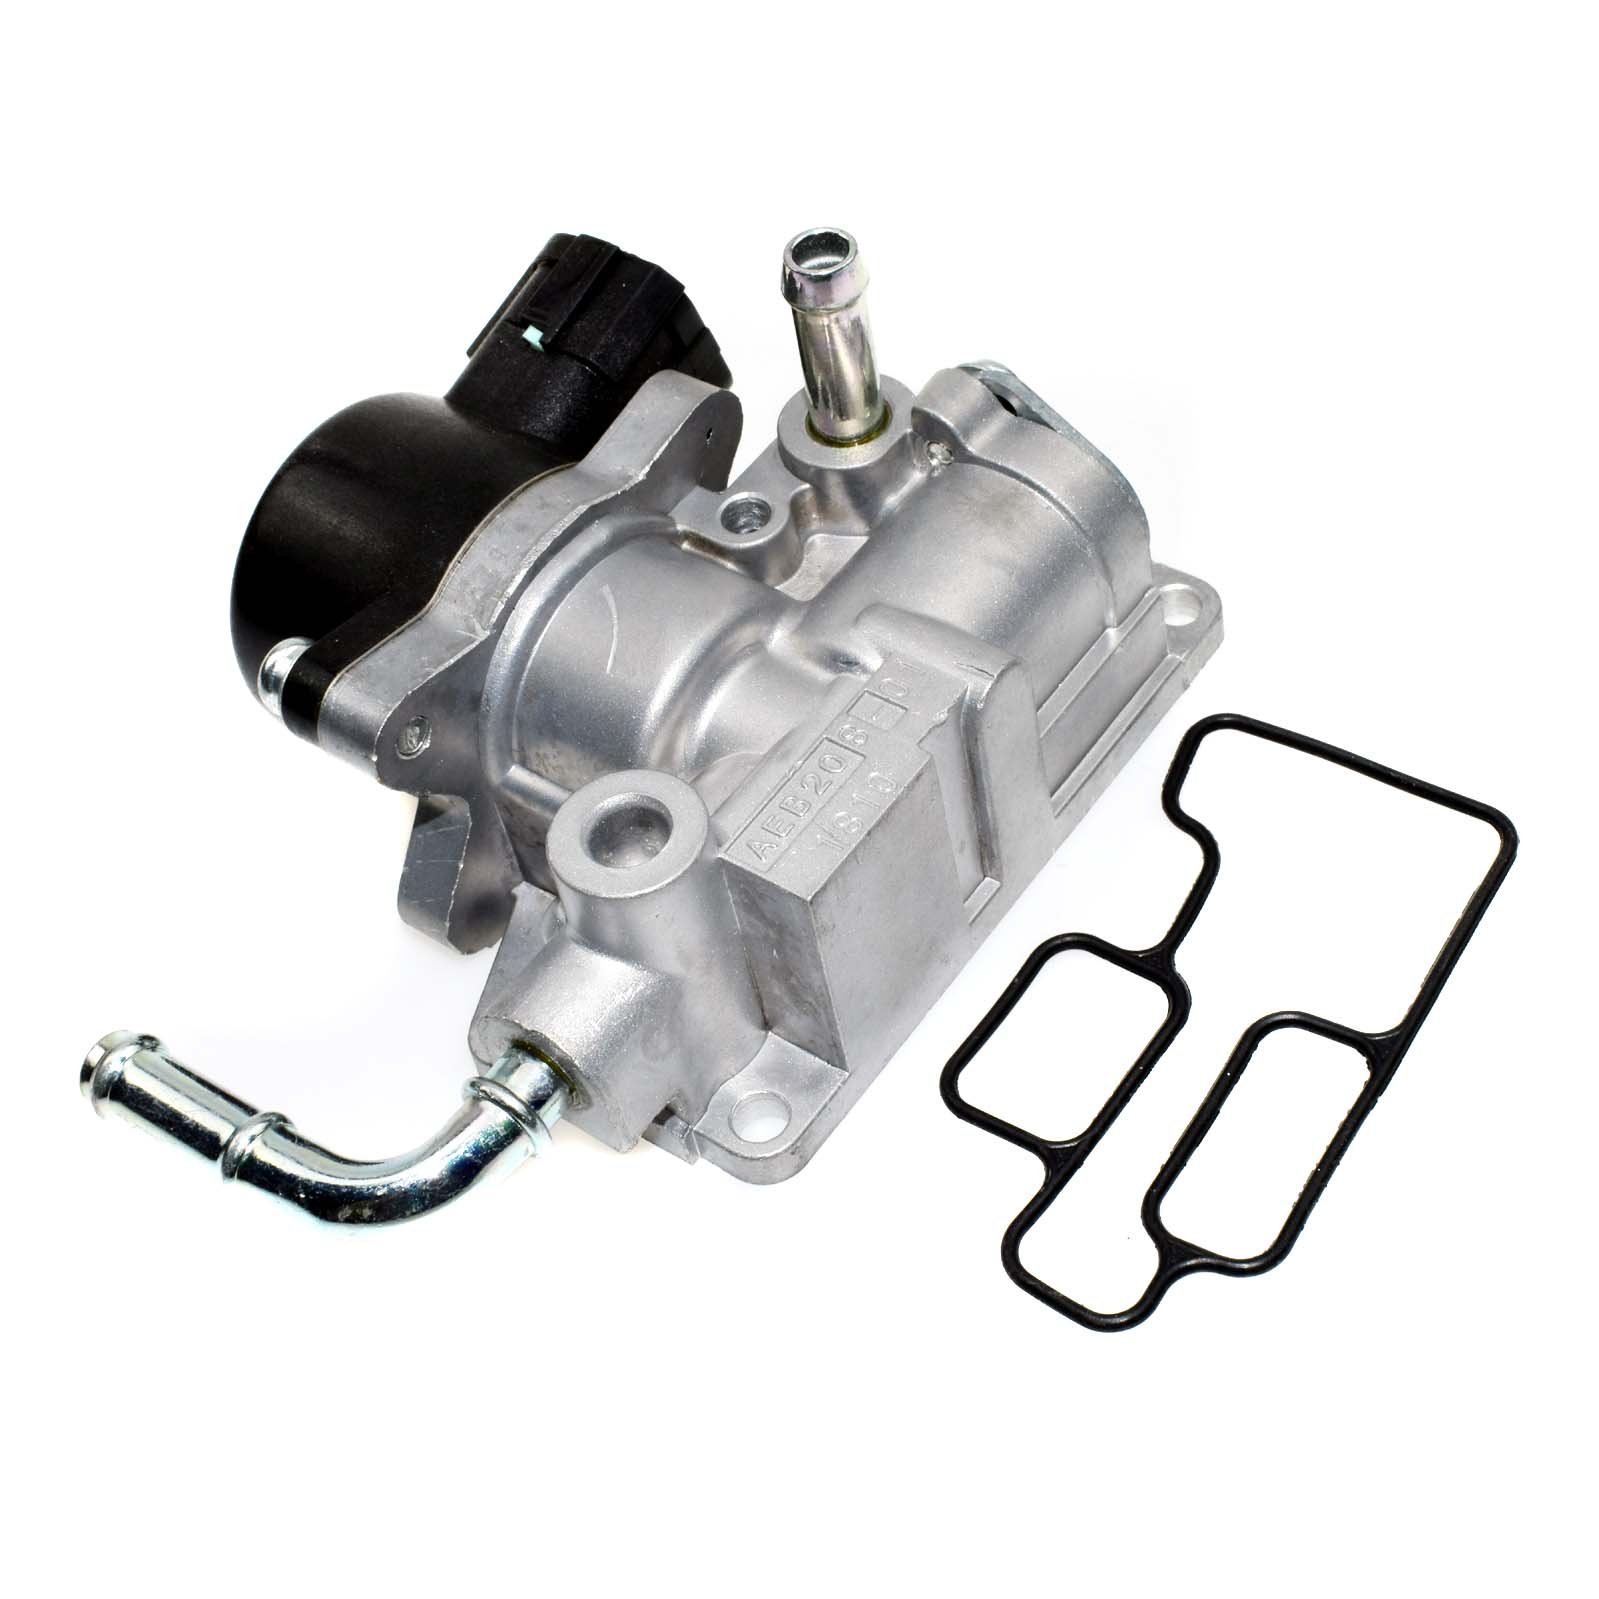 OEM HITACHI Fuel Injection Idle Air Control Valve ICV nEw for Nissan Sentra 1.8L